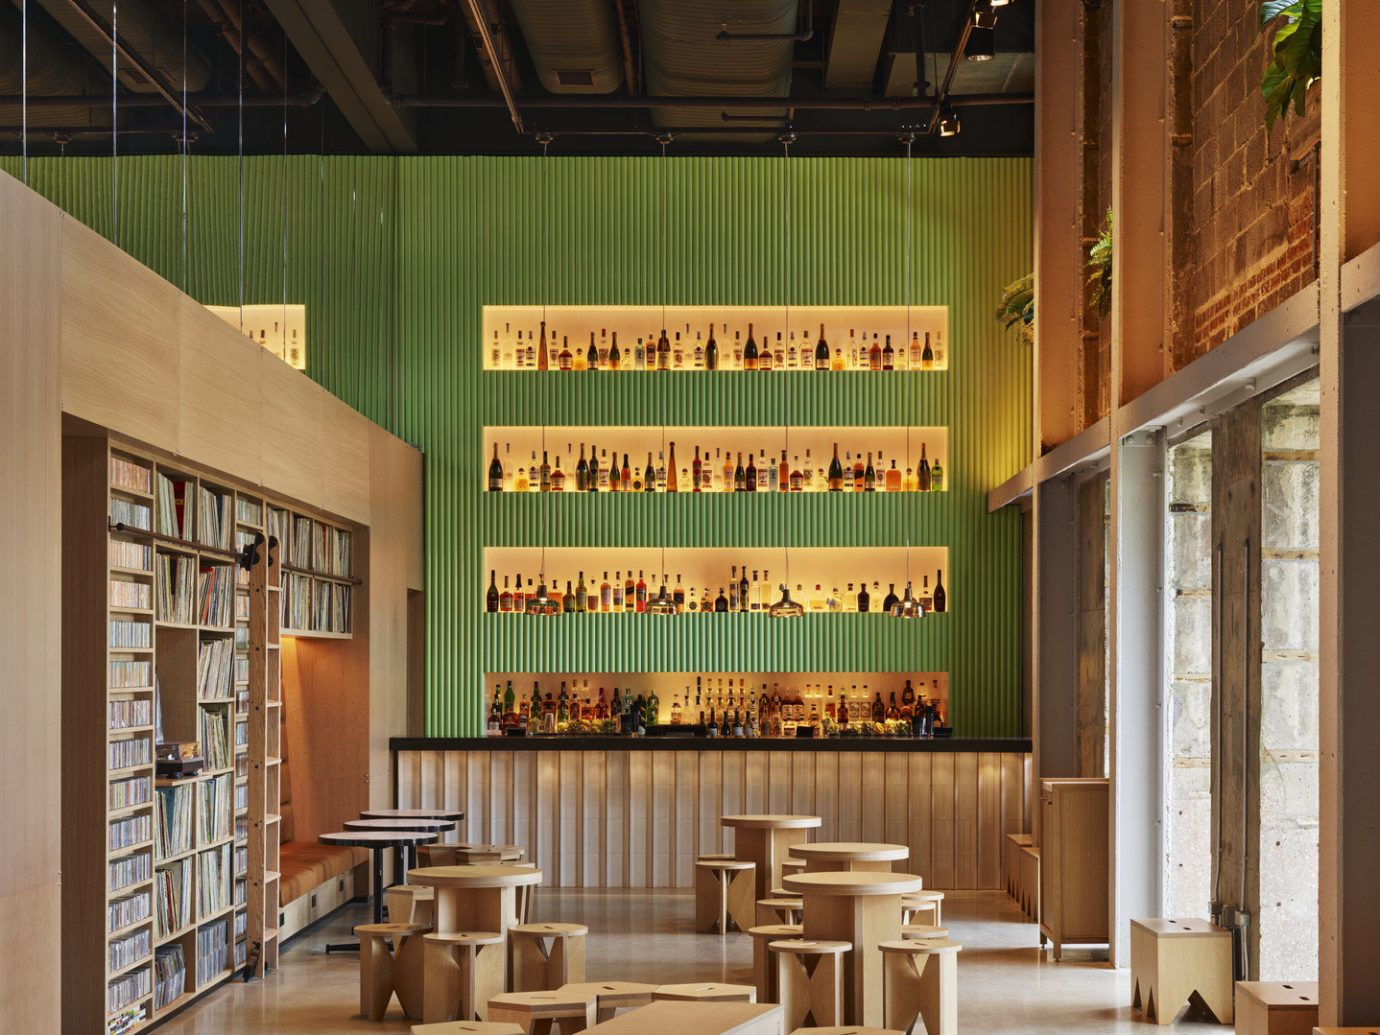 ambient lighting artistic artsy Bar bar seating Boutique cozy Hip Hotels industrial library Lounge Luxury Modern natural light trendy floor indoor Lobby interior design public library wood Design tourist attraction furniture